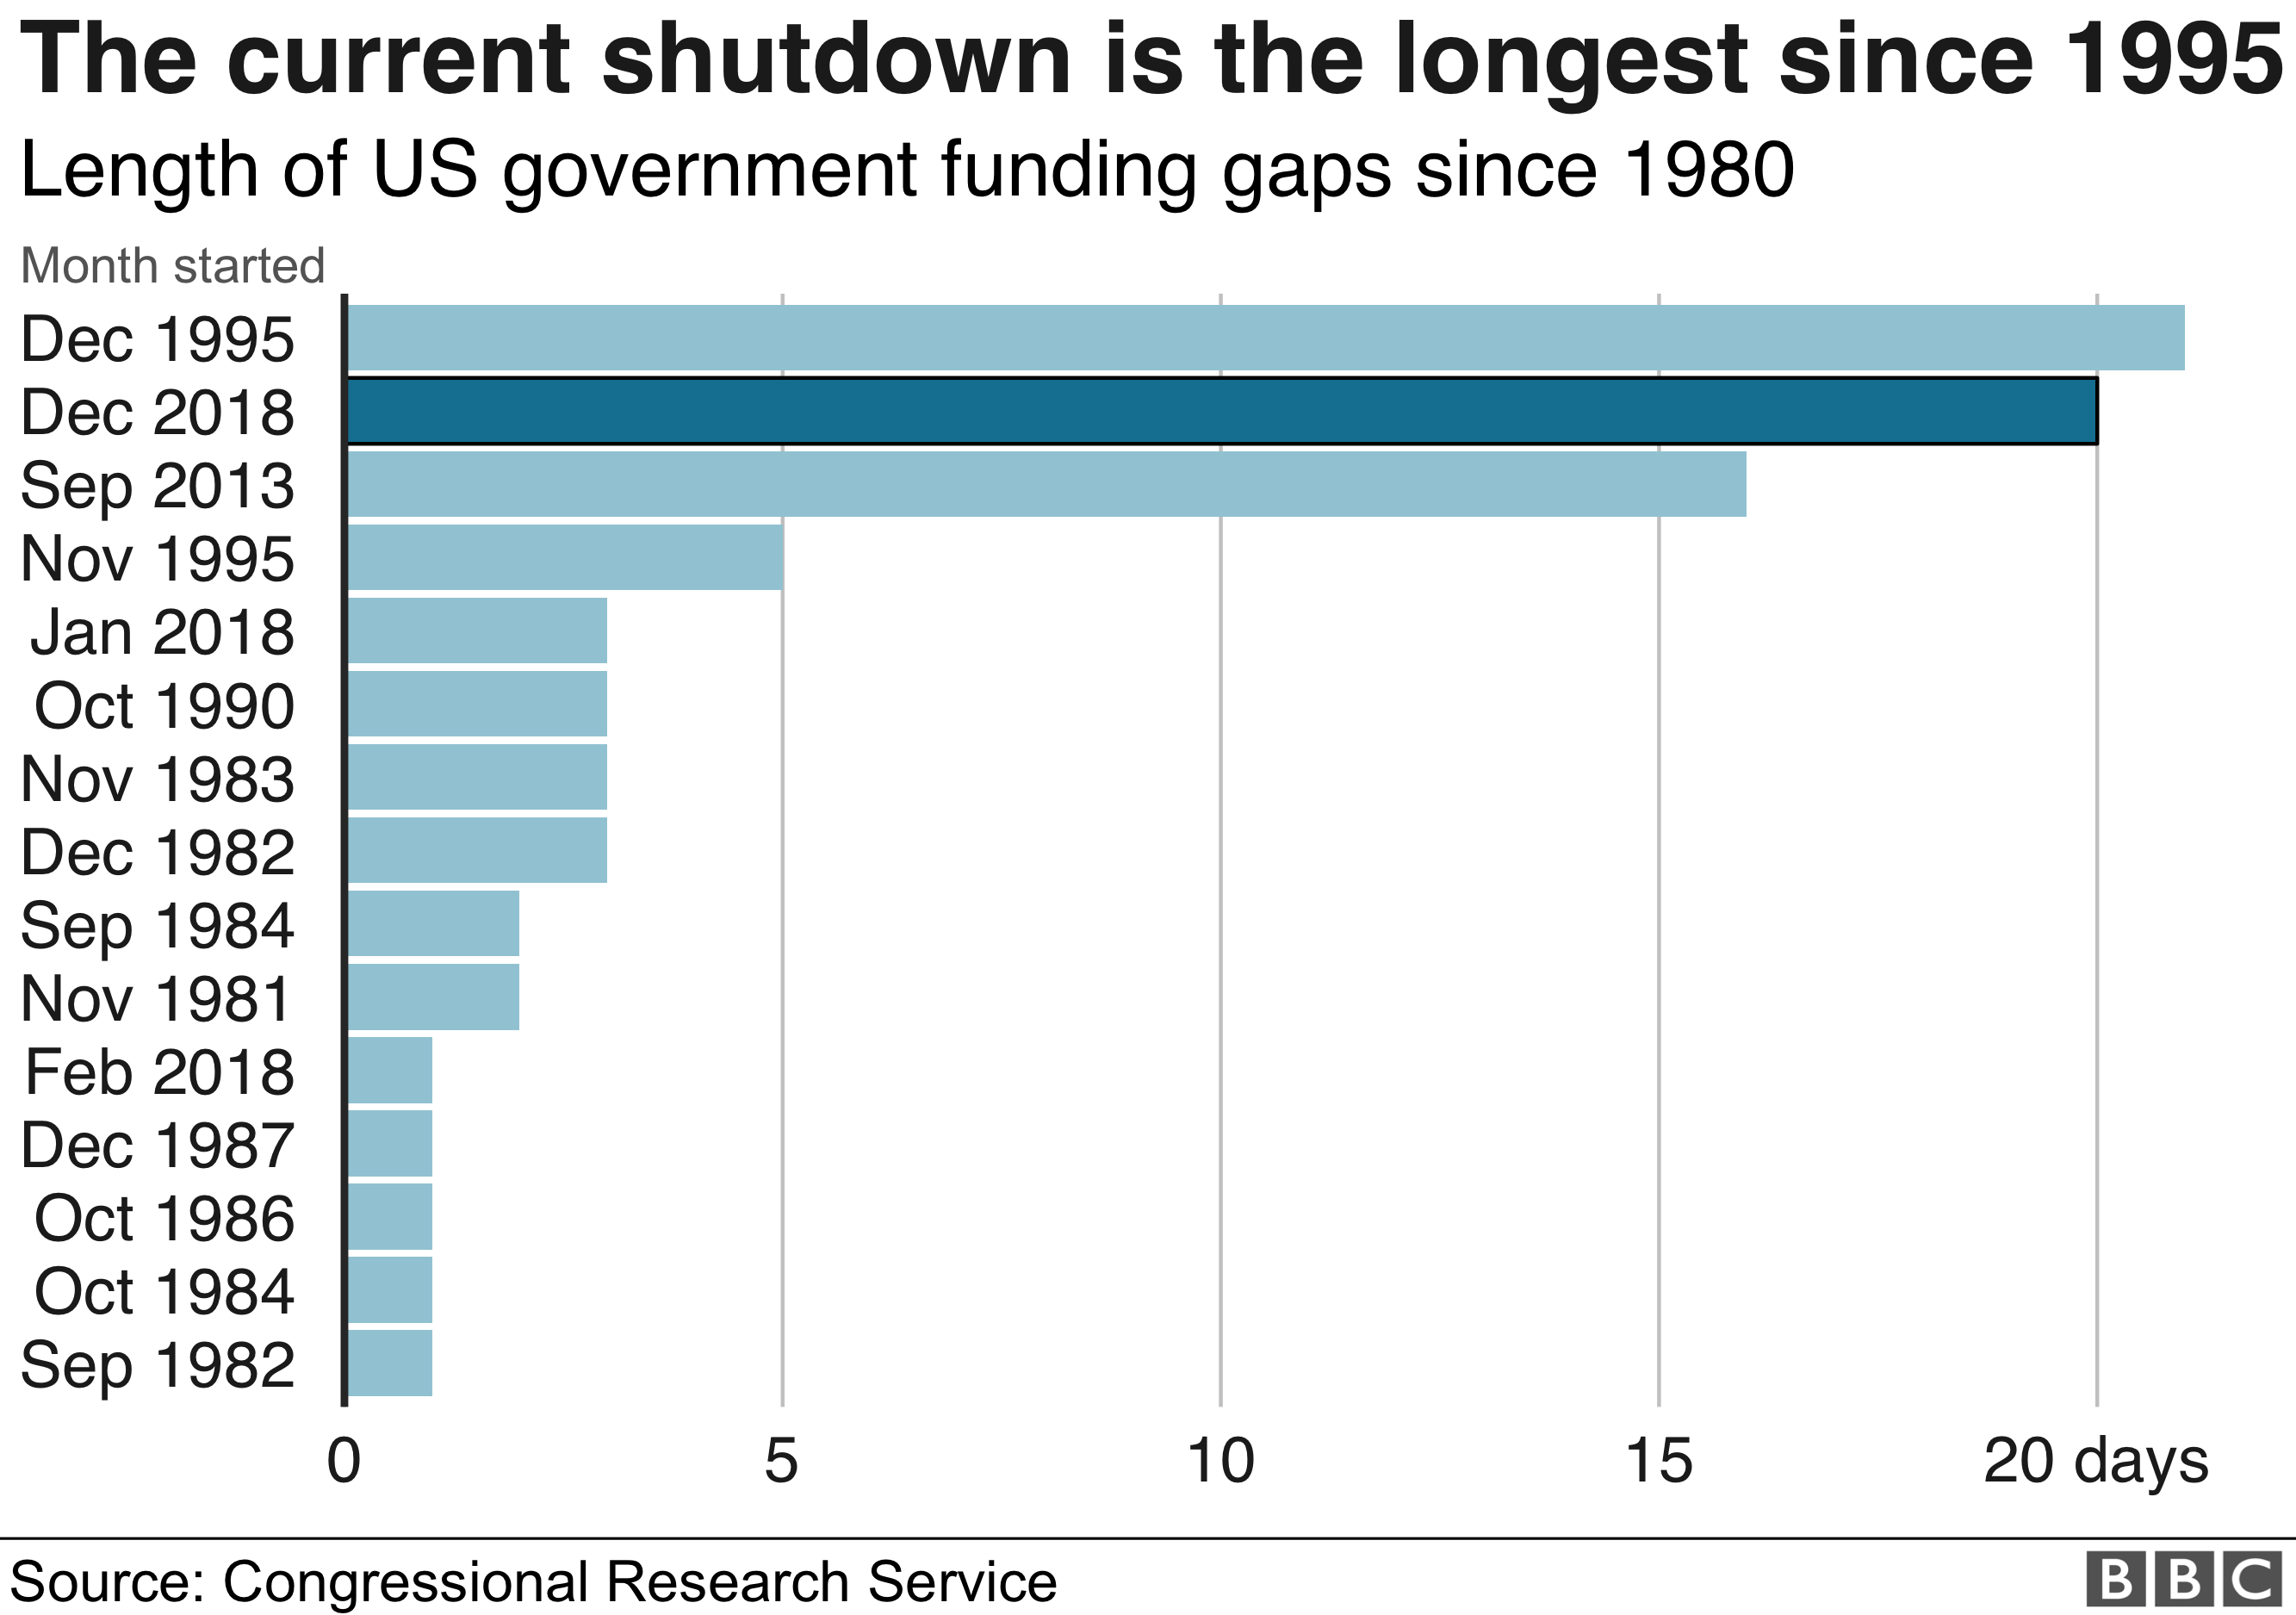 Chart showing the length of government shutdowns since 1980. The current shutdown is the second longest in that time period.